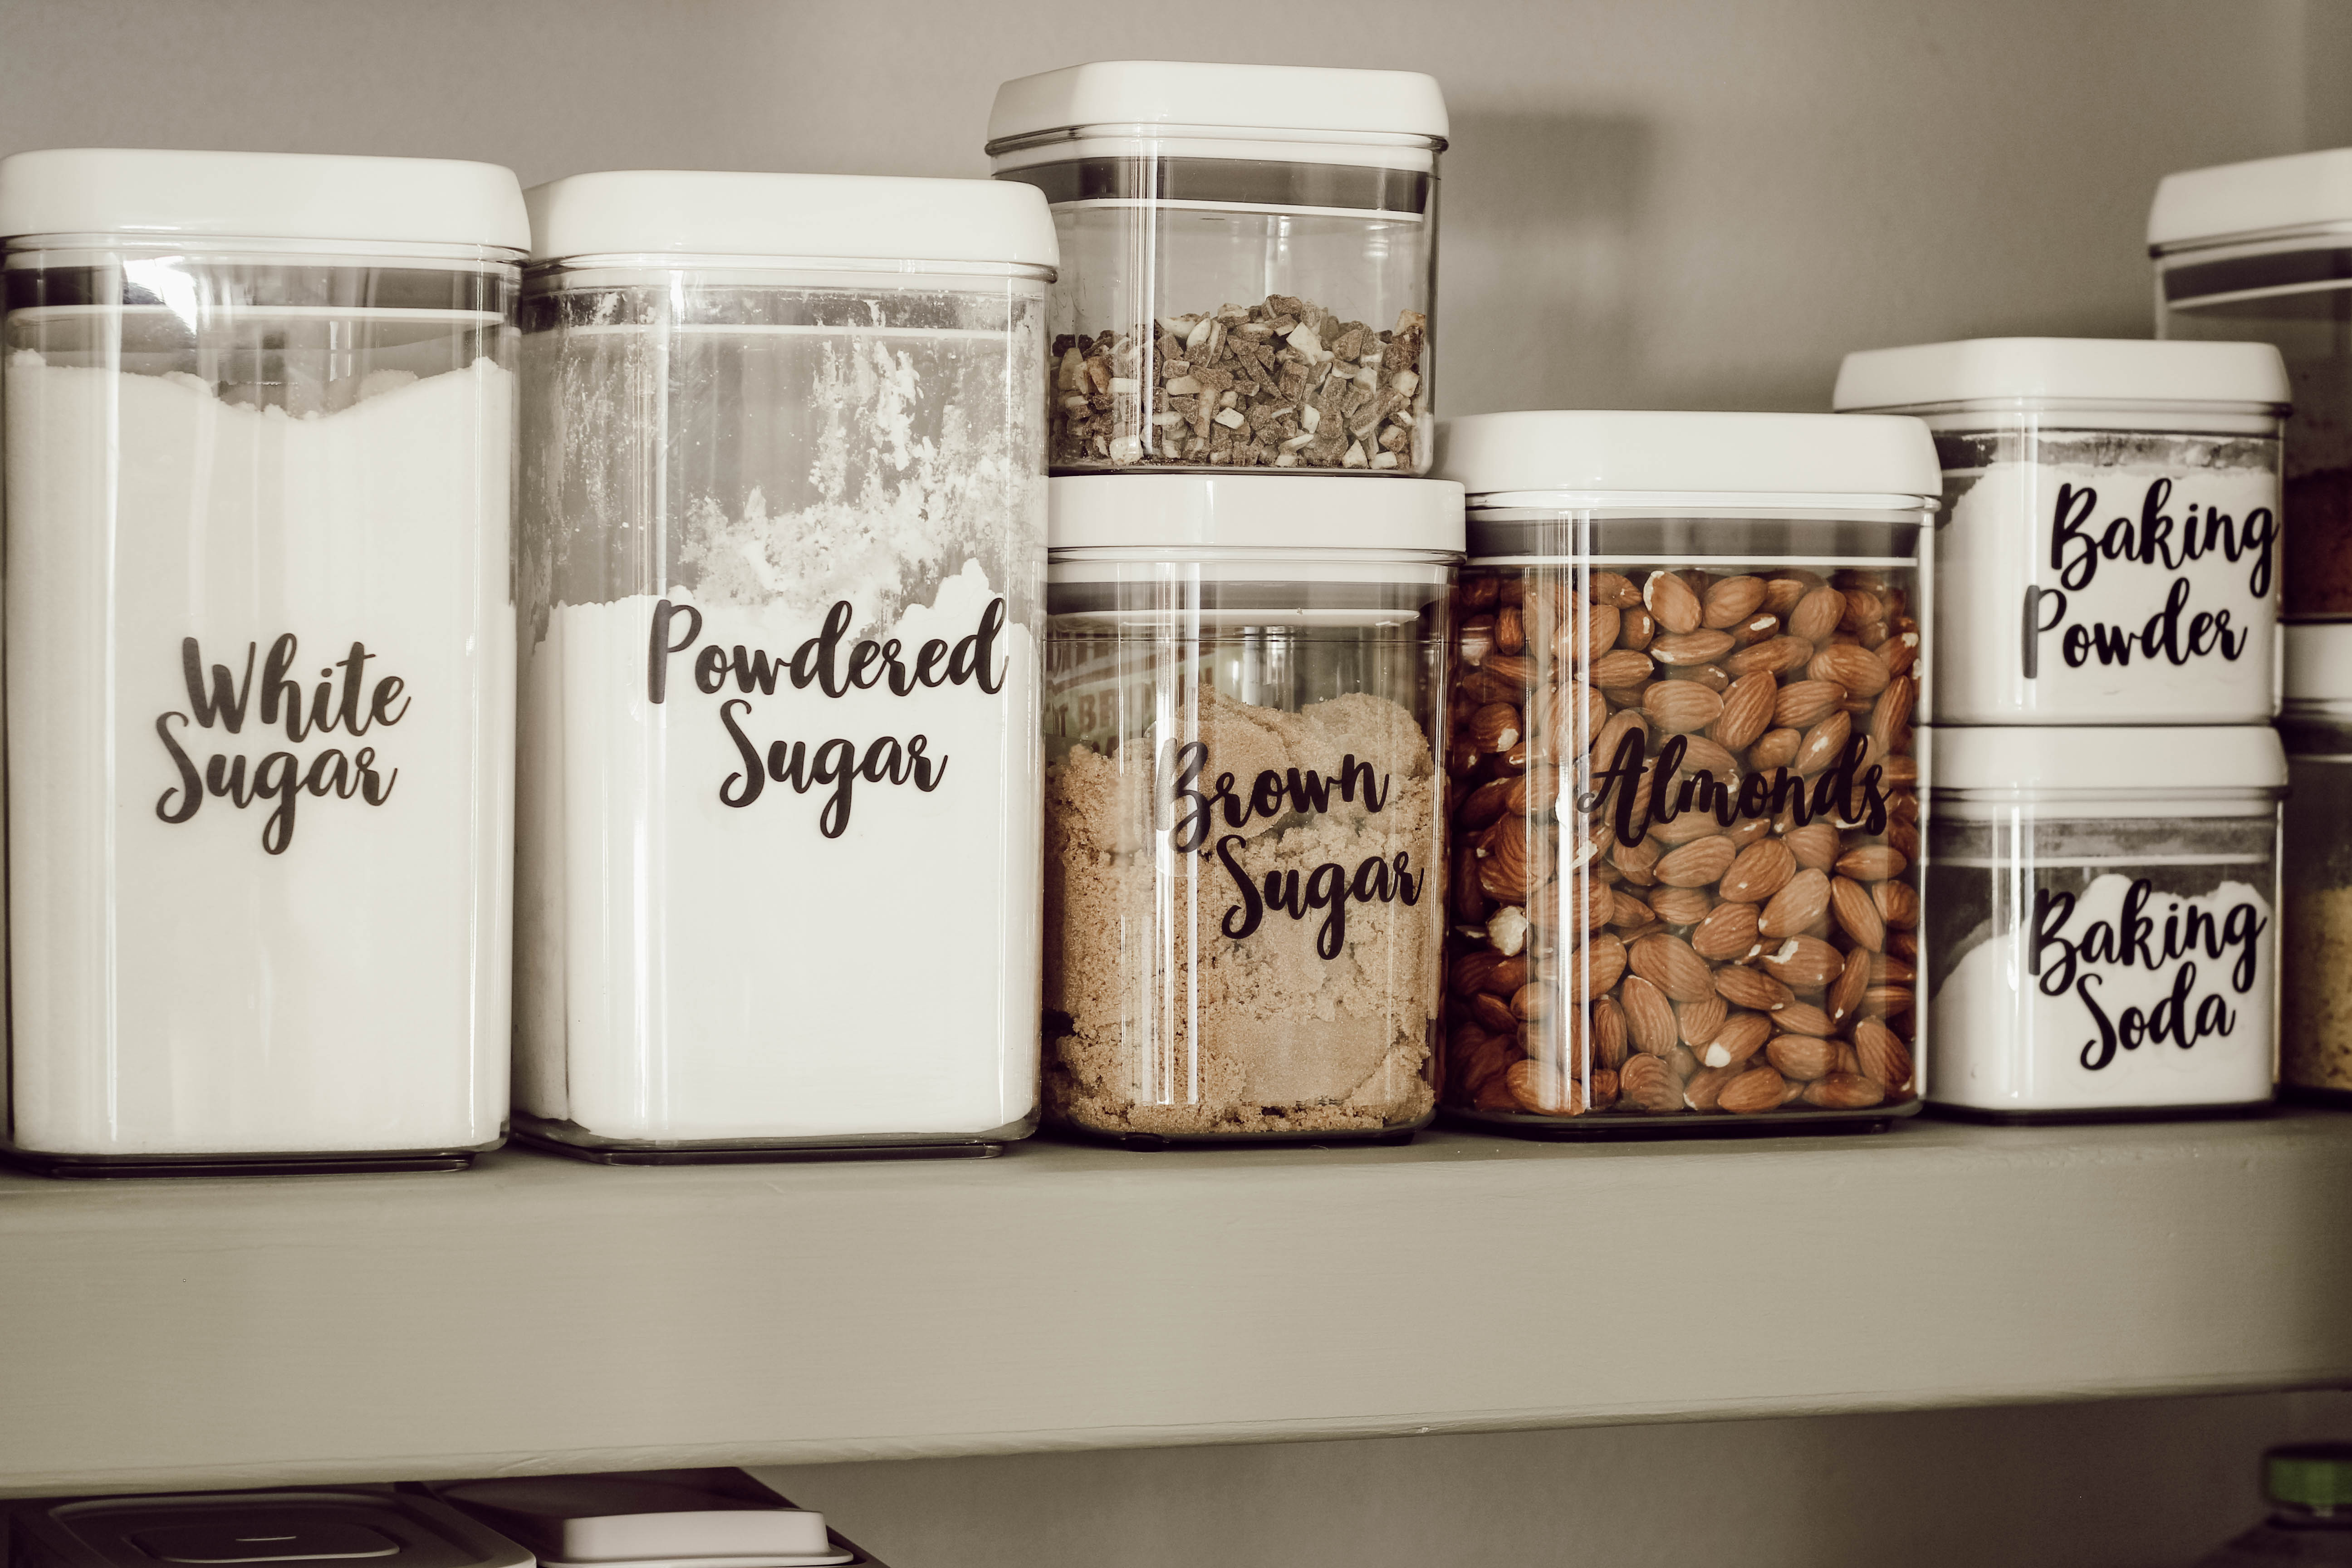 Are you looking for tips on kitchen pantry ideas and organization? I've organized a list of the top kitchen pantry ideas and organization tips!